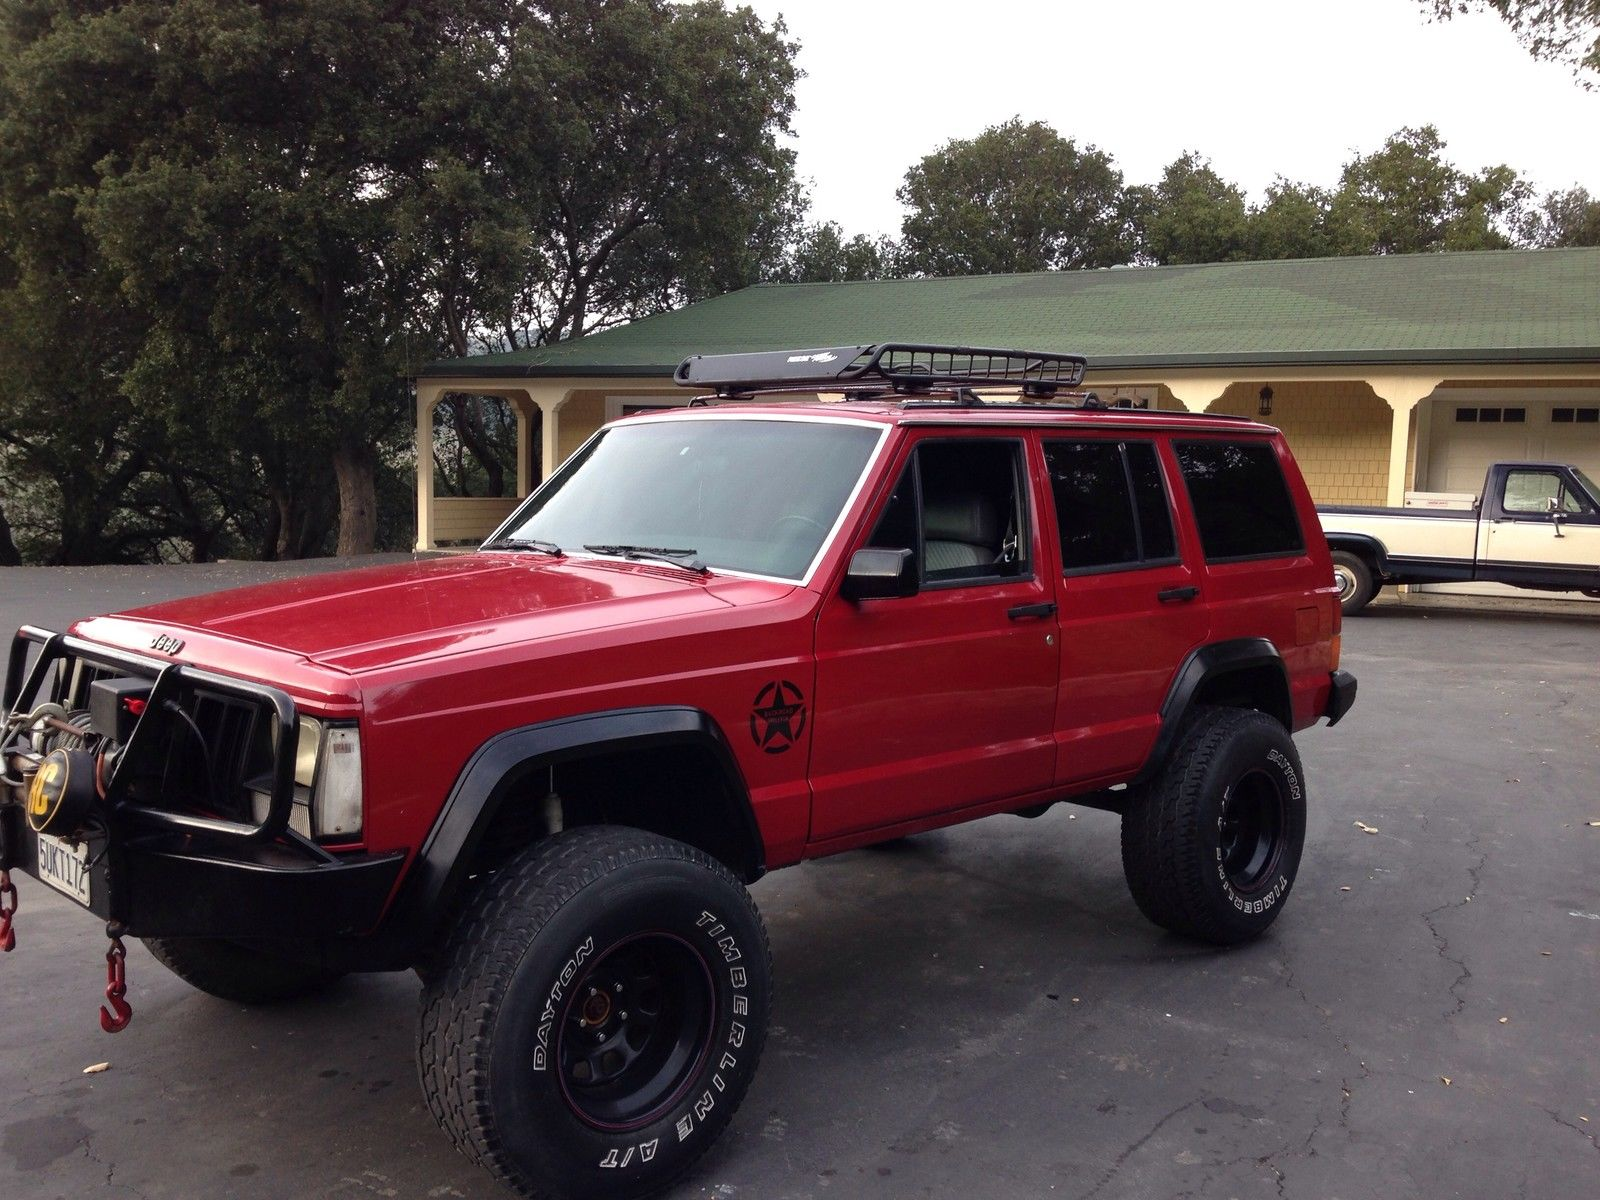 1989 jeep cherokee for sale photos technical specifications description. Black Bedroom Furniture Sets. Home Design Ideas